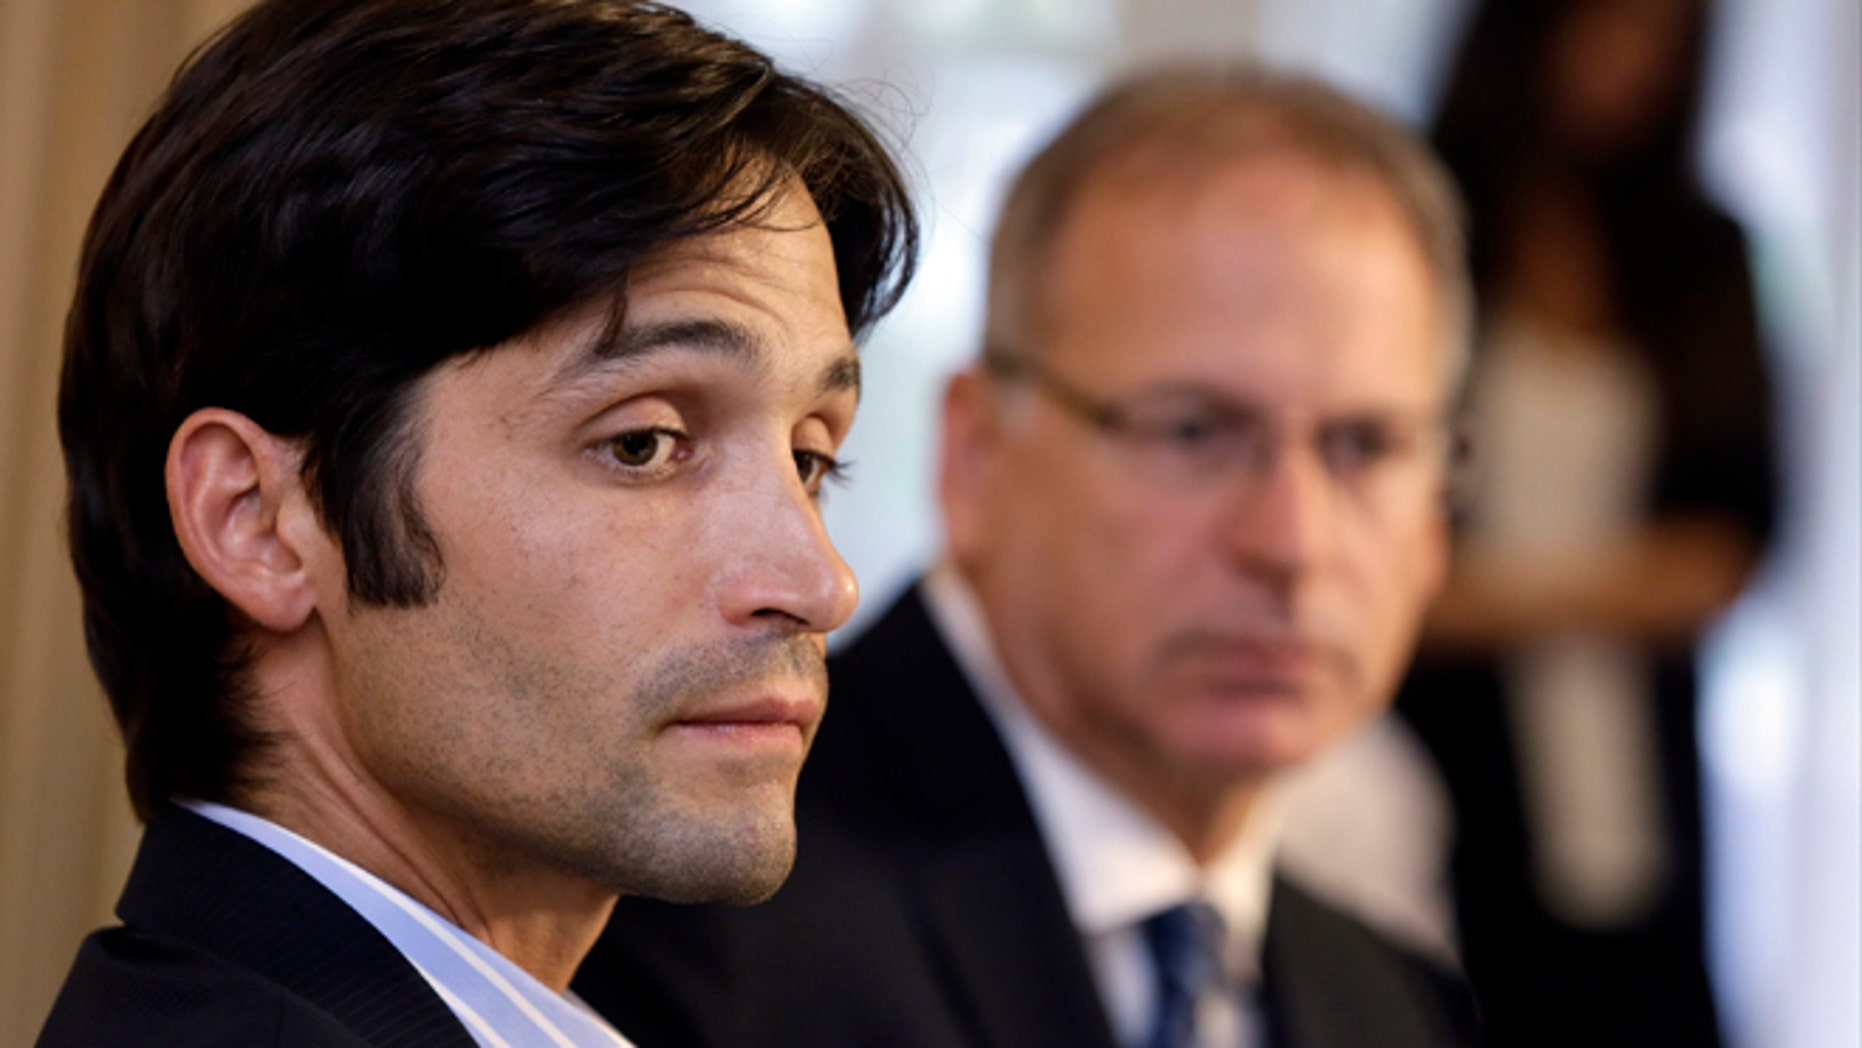 April 17, 2014: Plaintiff Michael Egan, left, with his attorney, Jeff Herman, take questions from the media during a news conference in Beverly Hills, Calif.